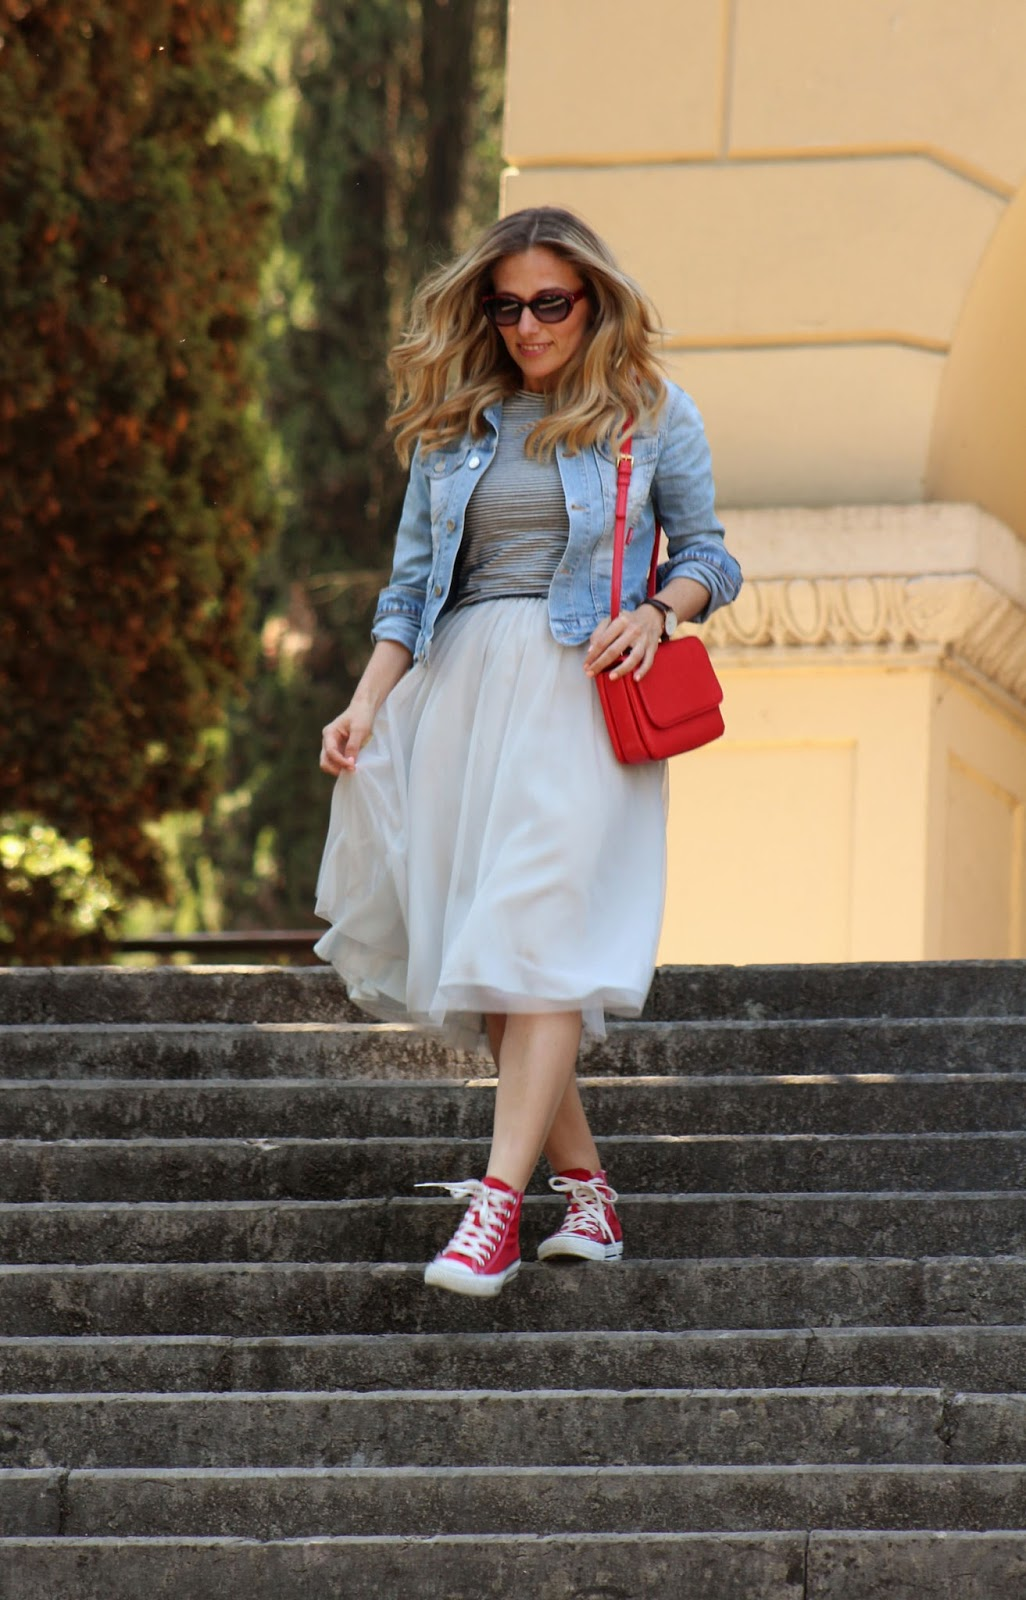 Eniwhere Fashion - gonna in tulle e Converse